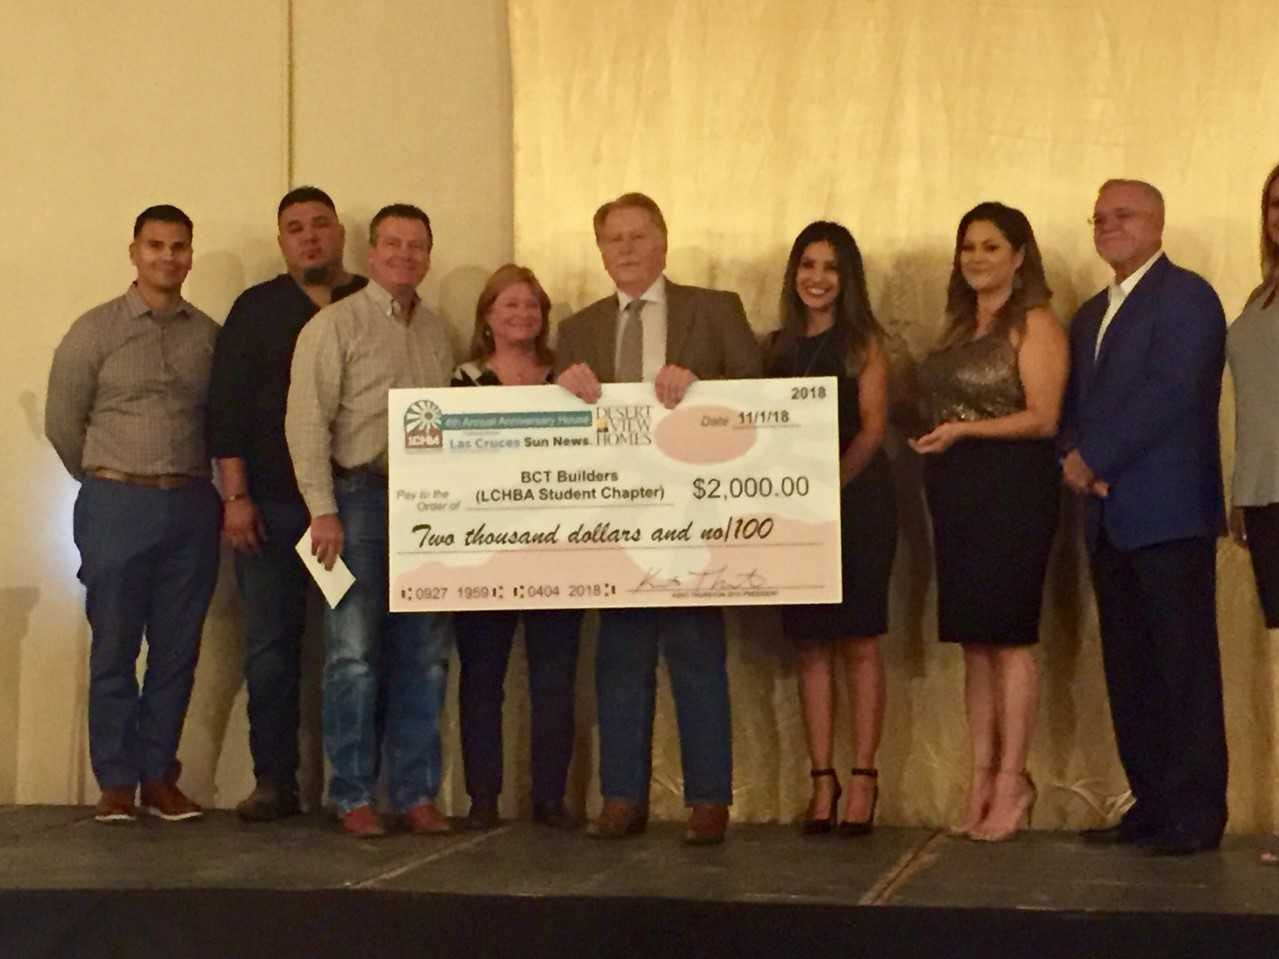 BCT Builders (LCHBA student chapter), $2,000